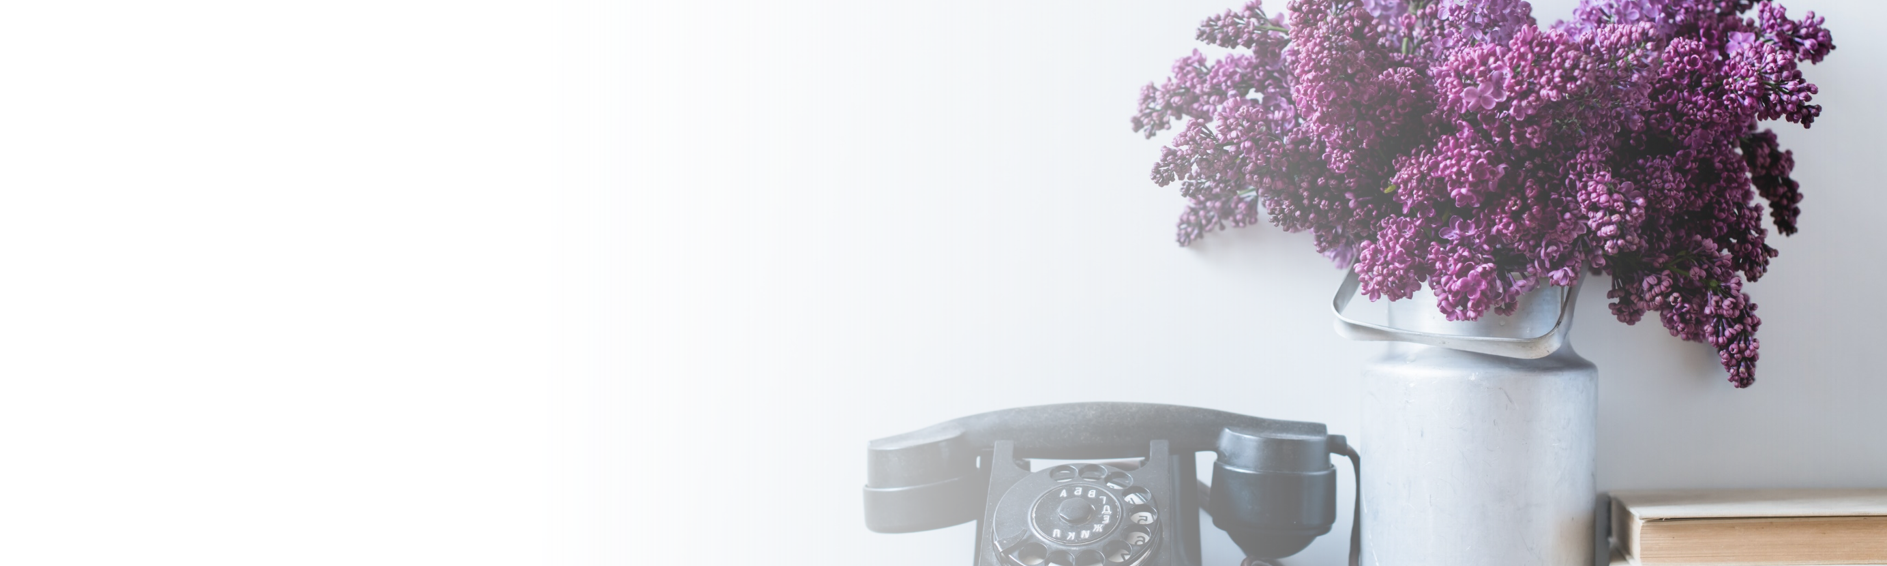 rotary phone and bouquet on desk